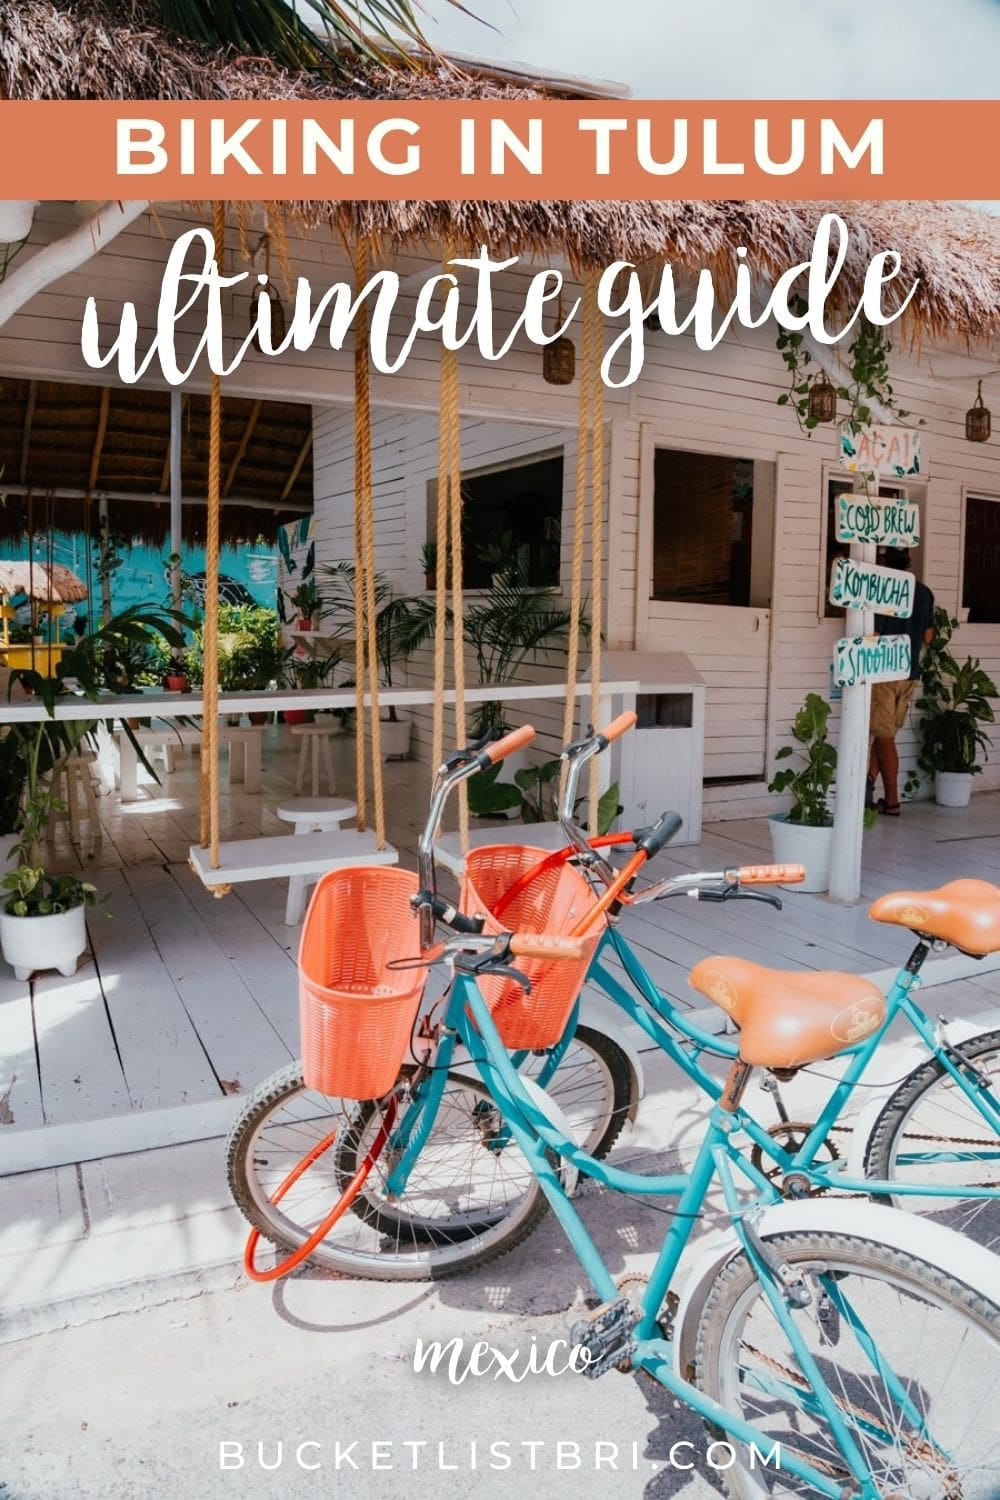 photo of bicycles in tulum with text overlay